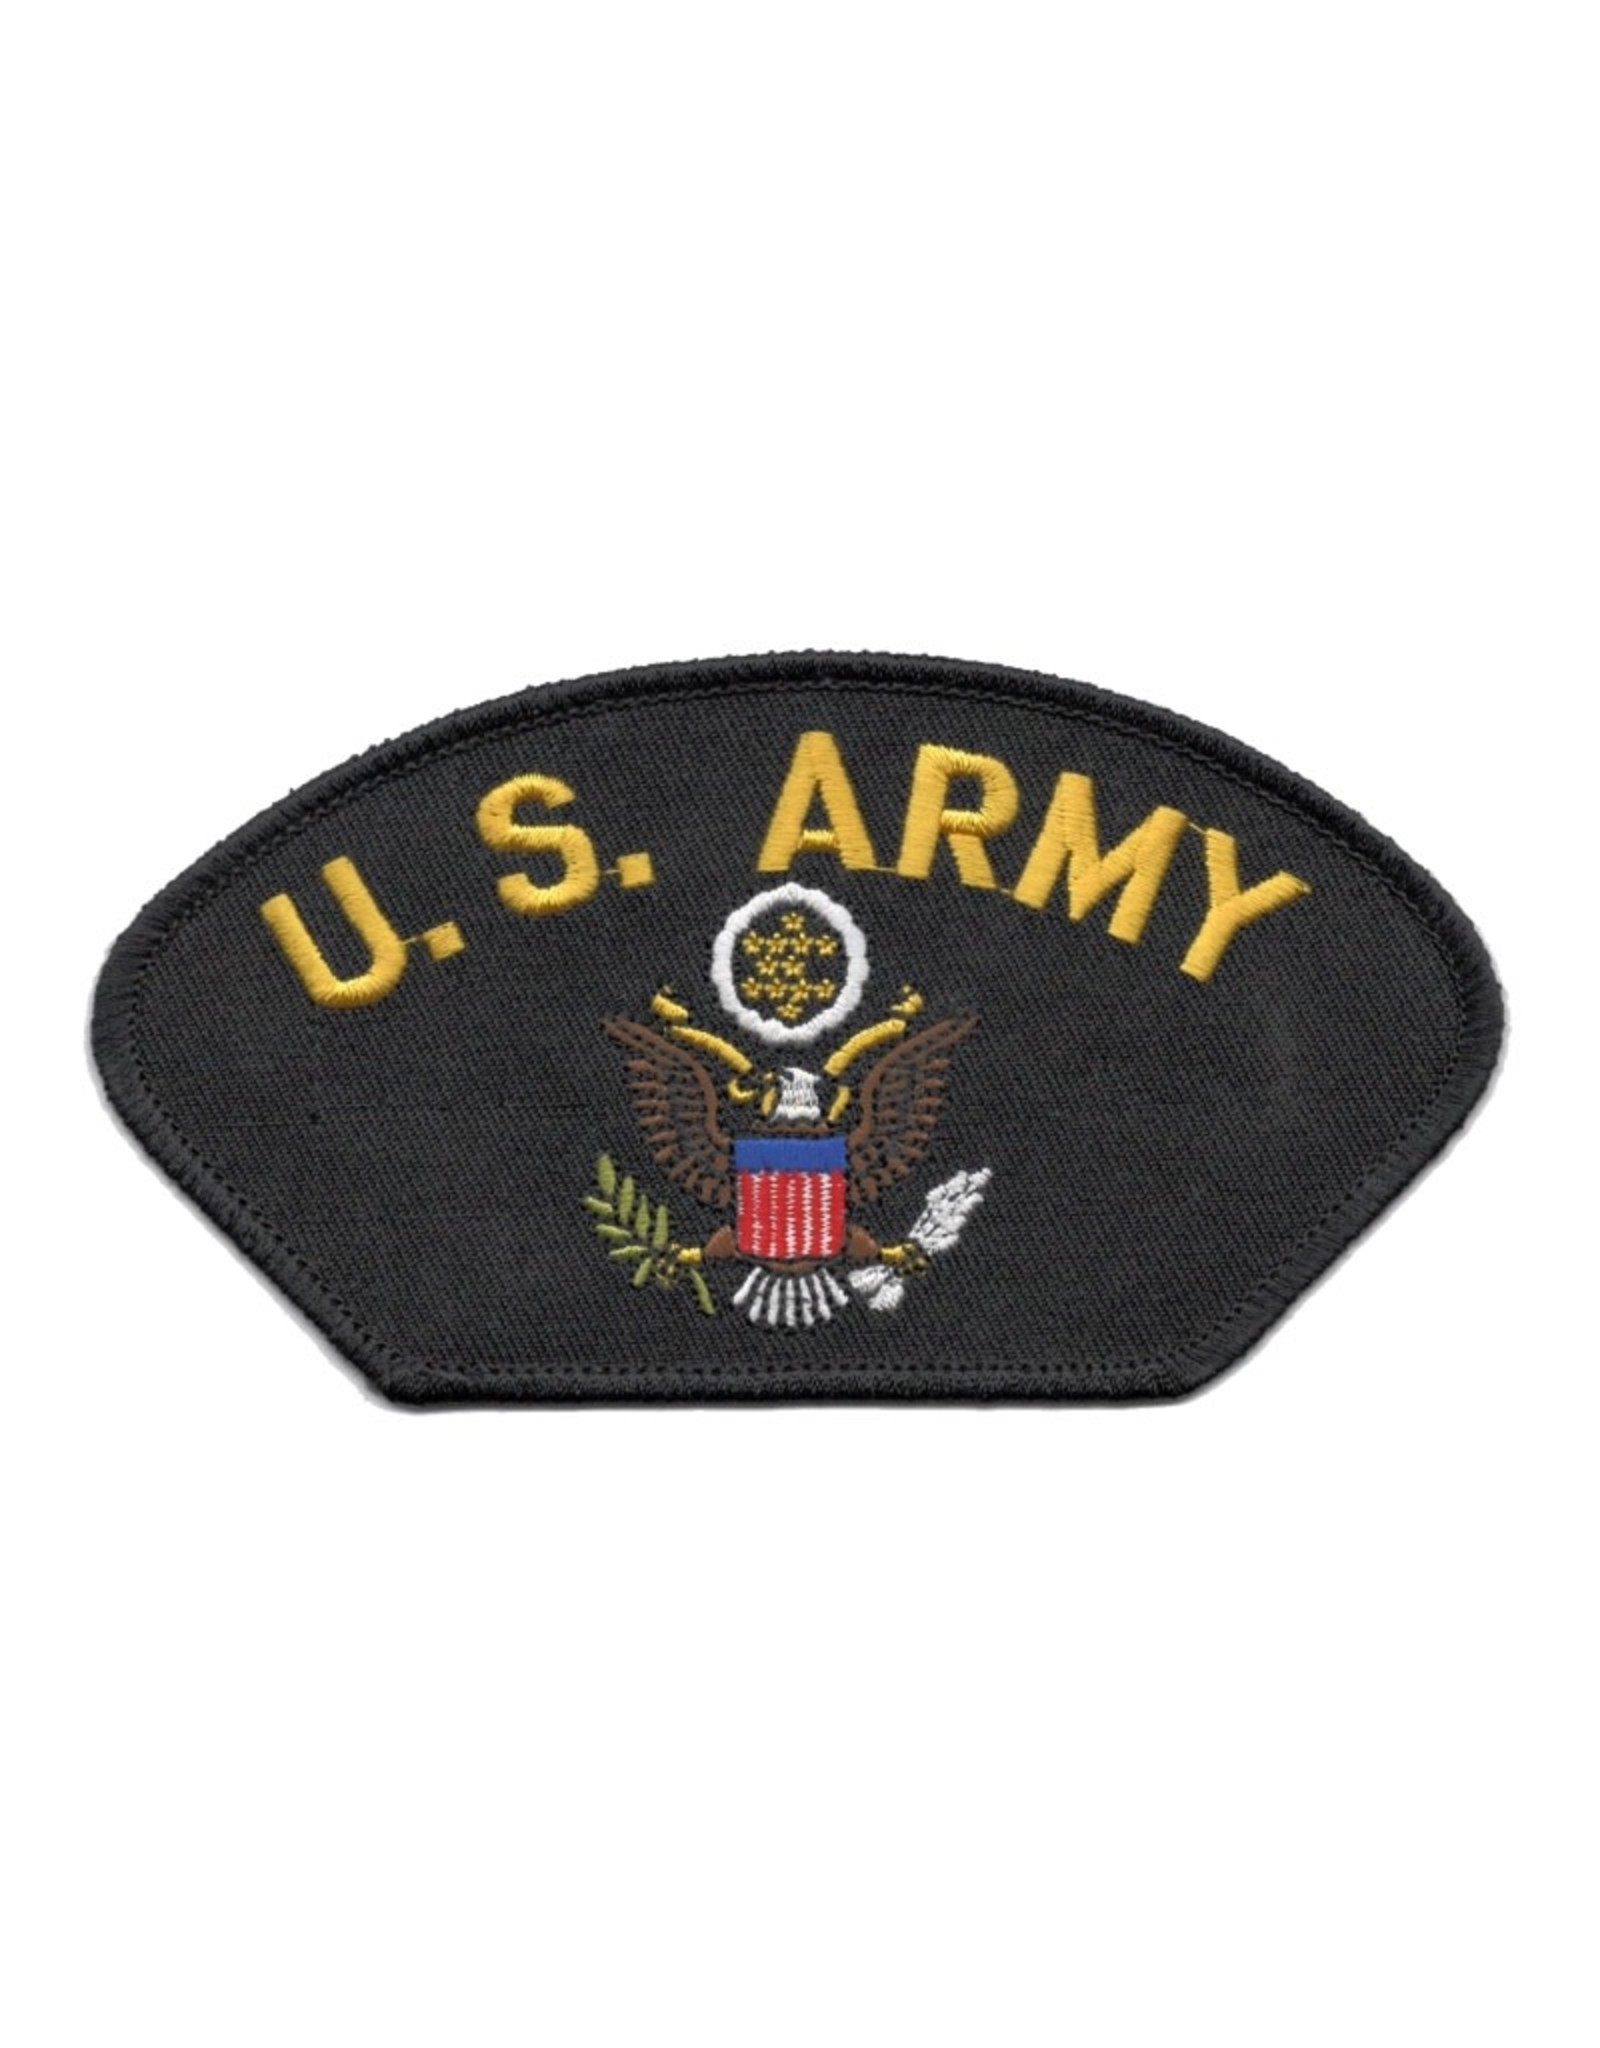 MidMil Embroidered U. S. Army Patch with Emblem